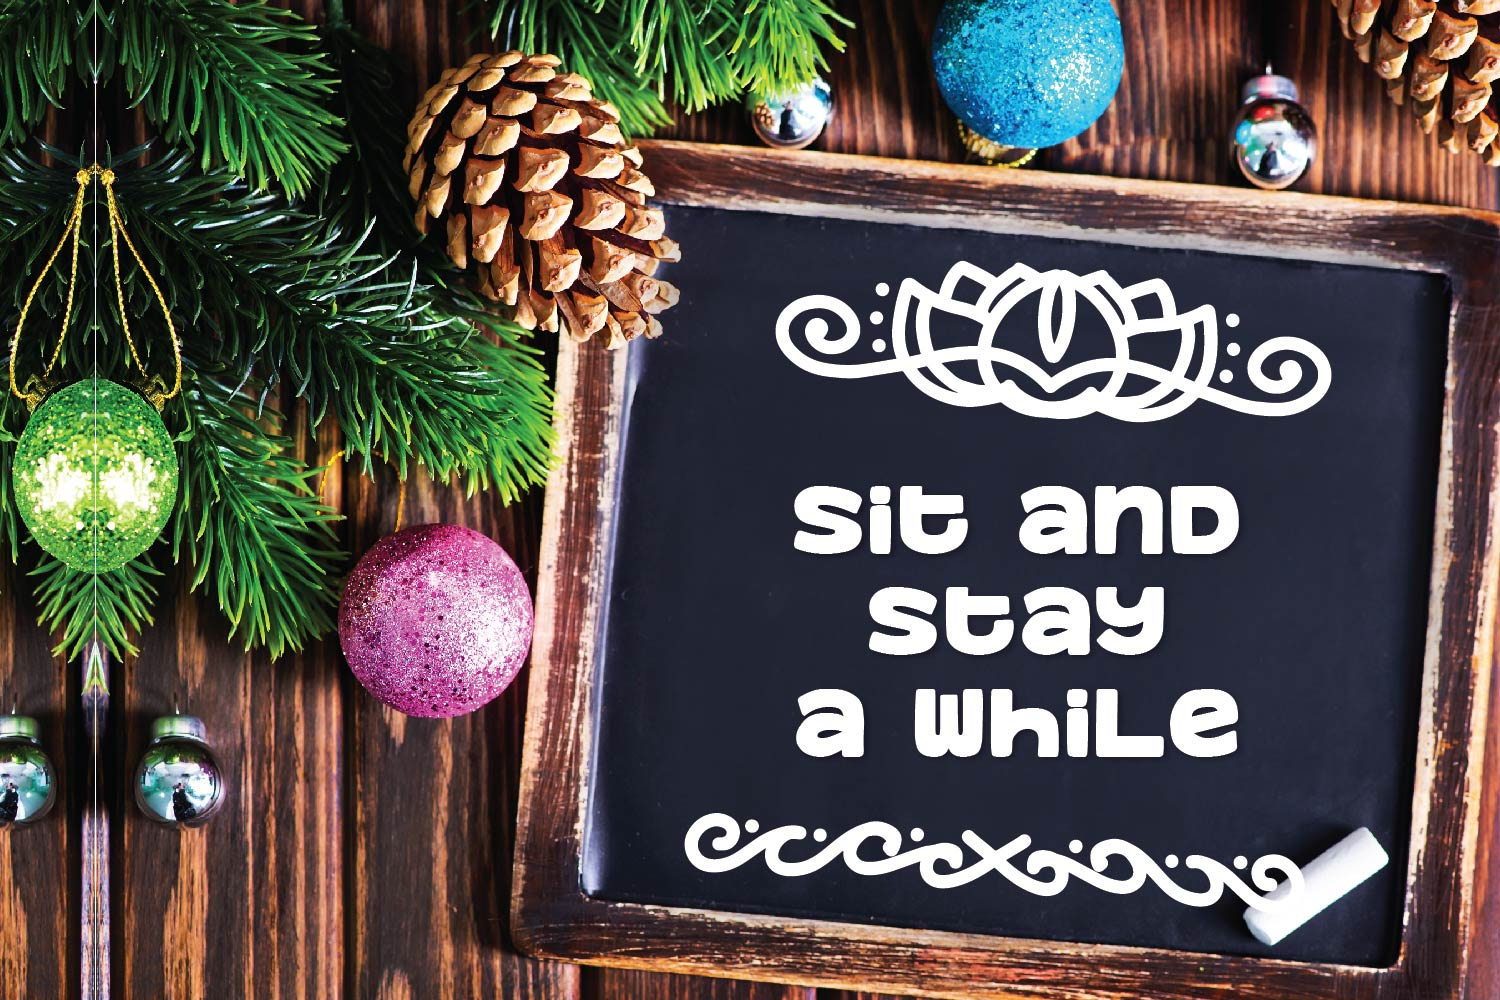 Storybook Banners - A Dingbat Font Full of Magical Borders example image 7